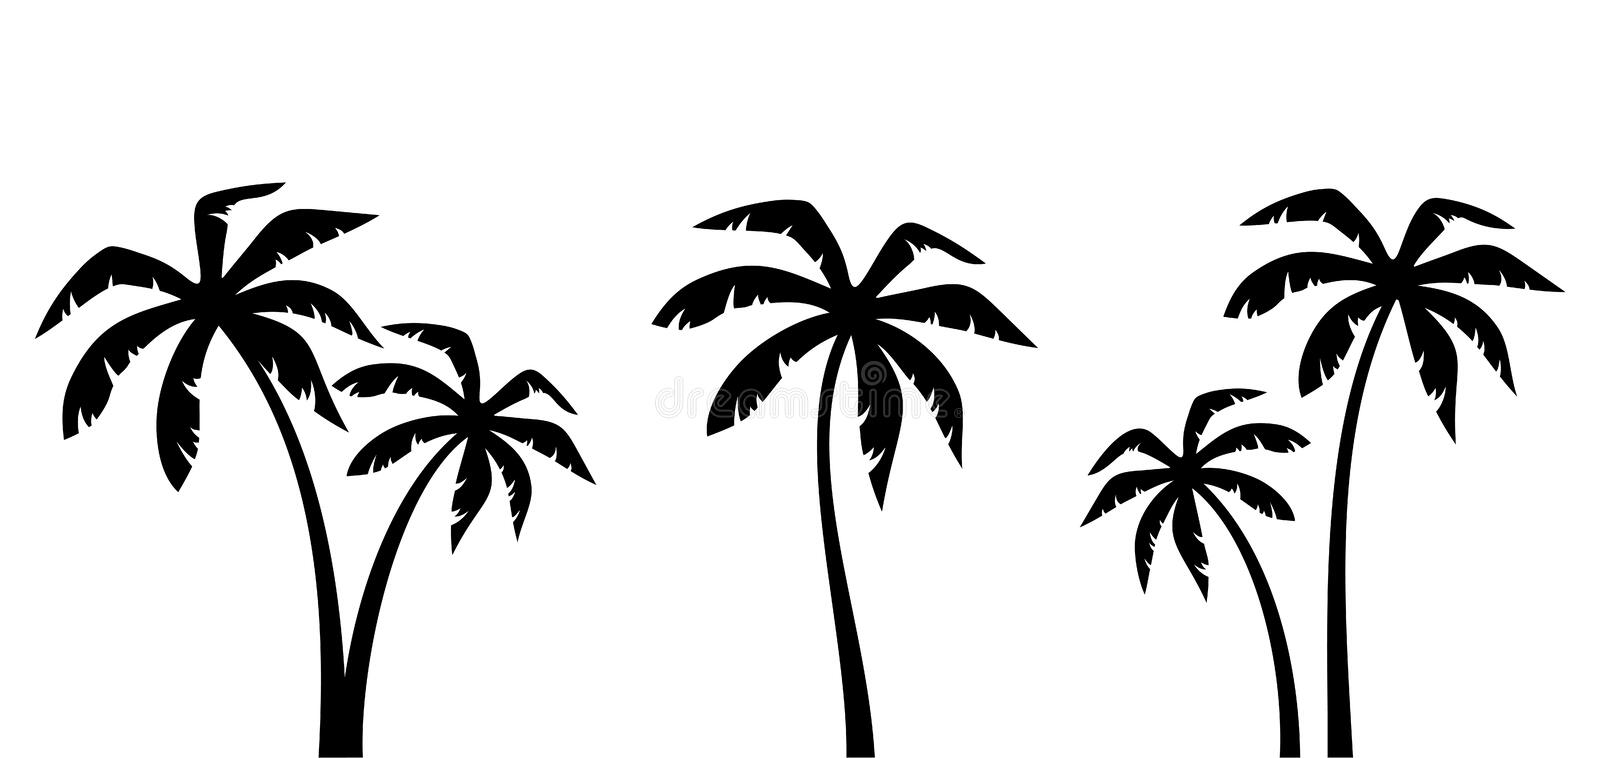 set of palm trees vector black silhouettes stock vector rh dreamstime com palm tree vector clipart palm tree vector file